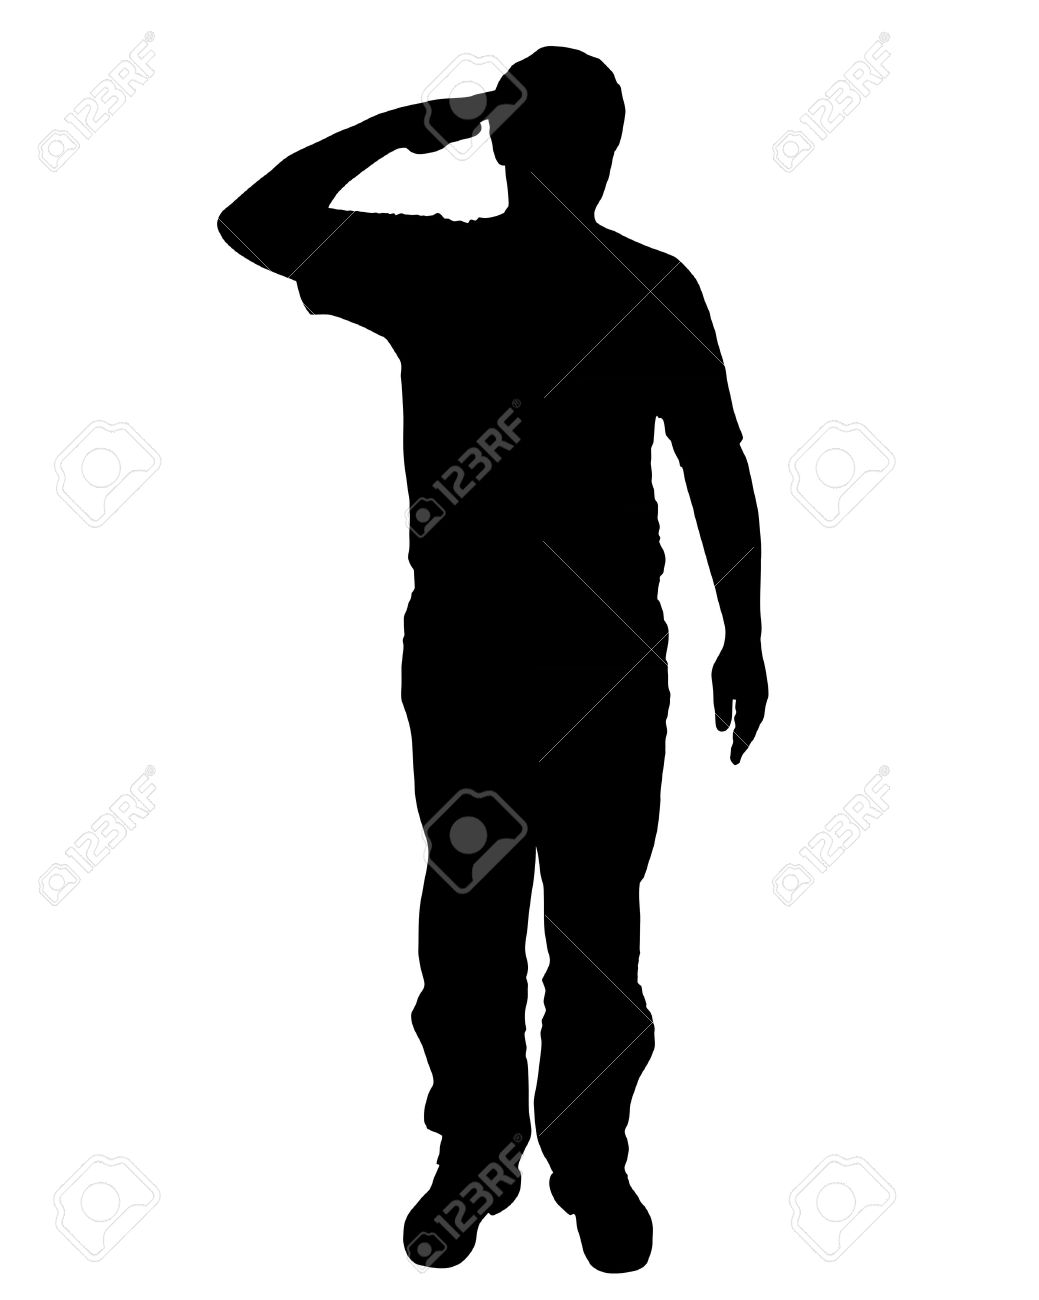 Military Salute Clipart.